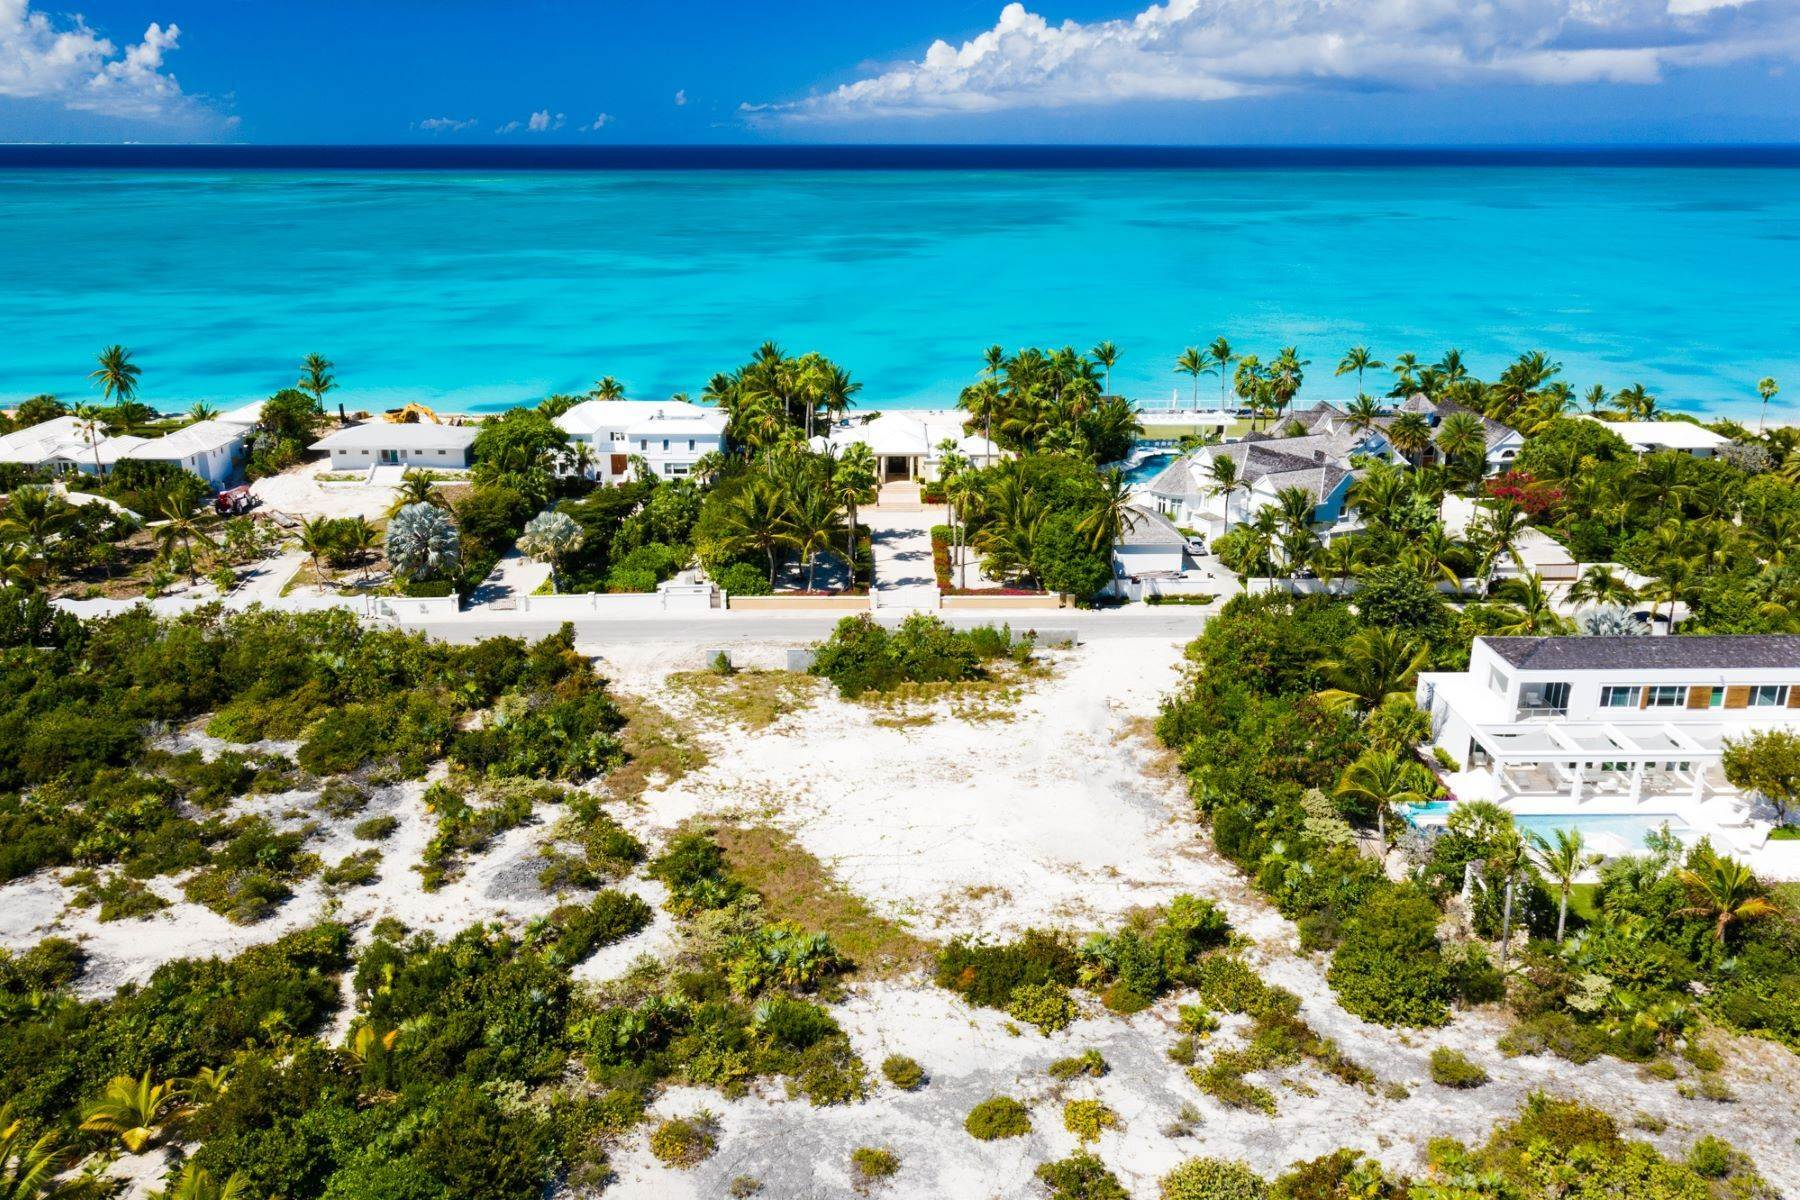 Land for Sale at Vacant Land - Tranquility Lane Leeward, Providenciales Turks And Caicos Islands